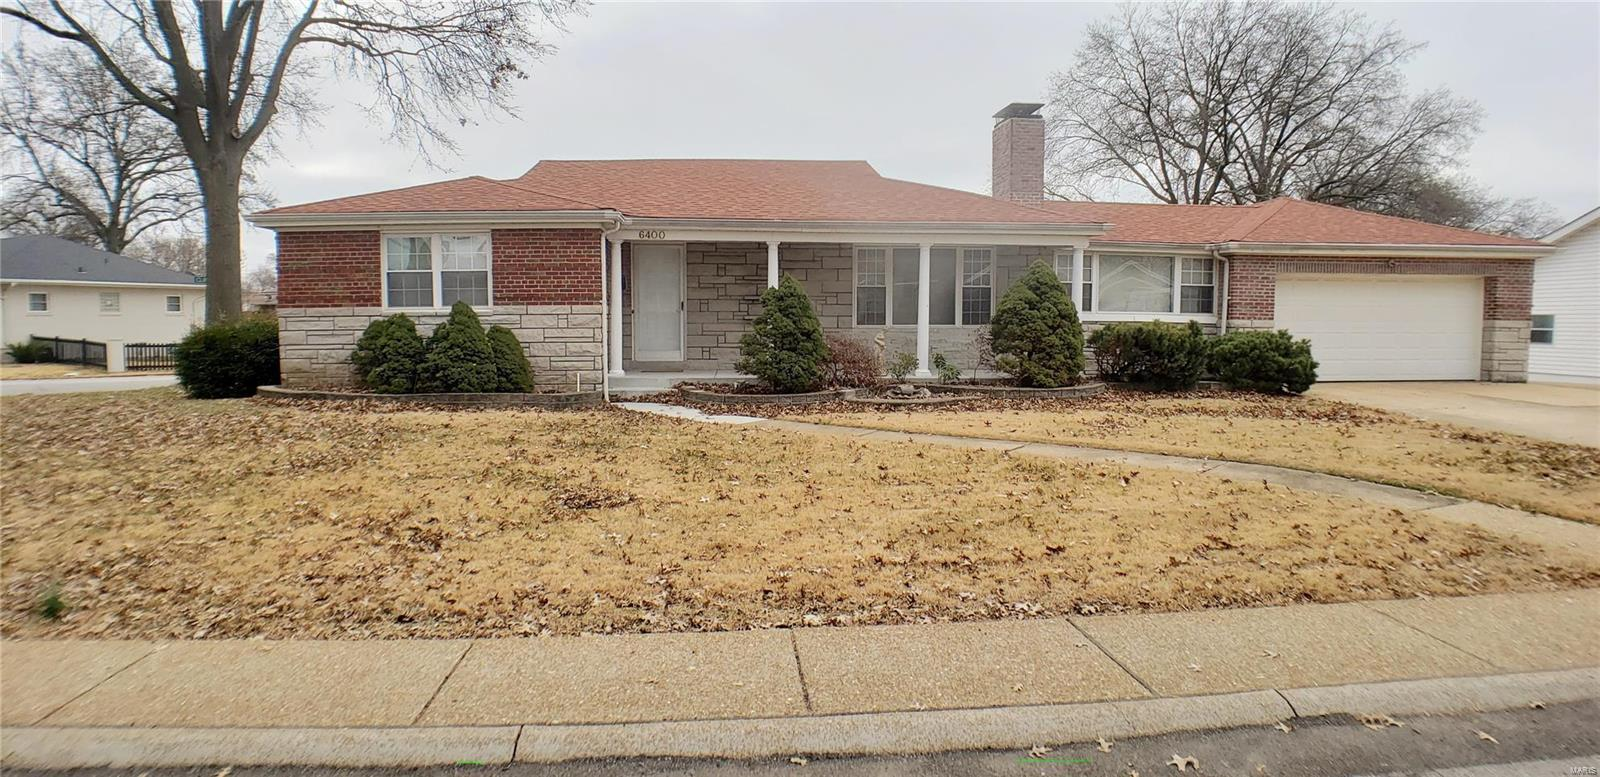 6400 Bishops Place Property Photo - St Louis, MO real estate listing